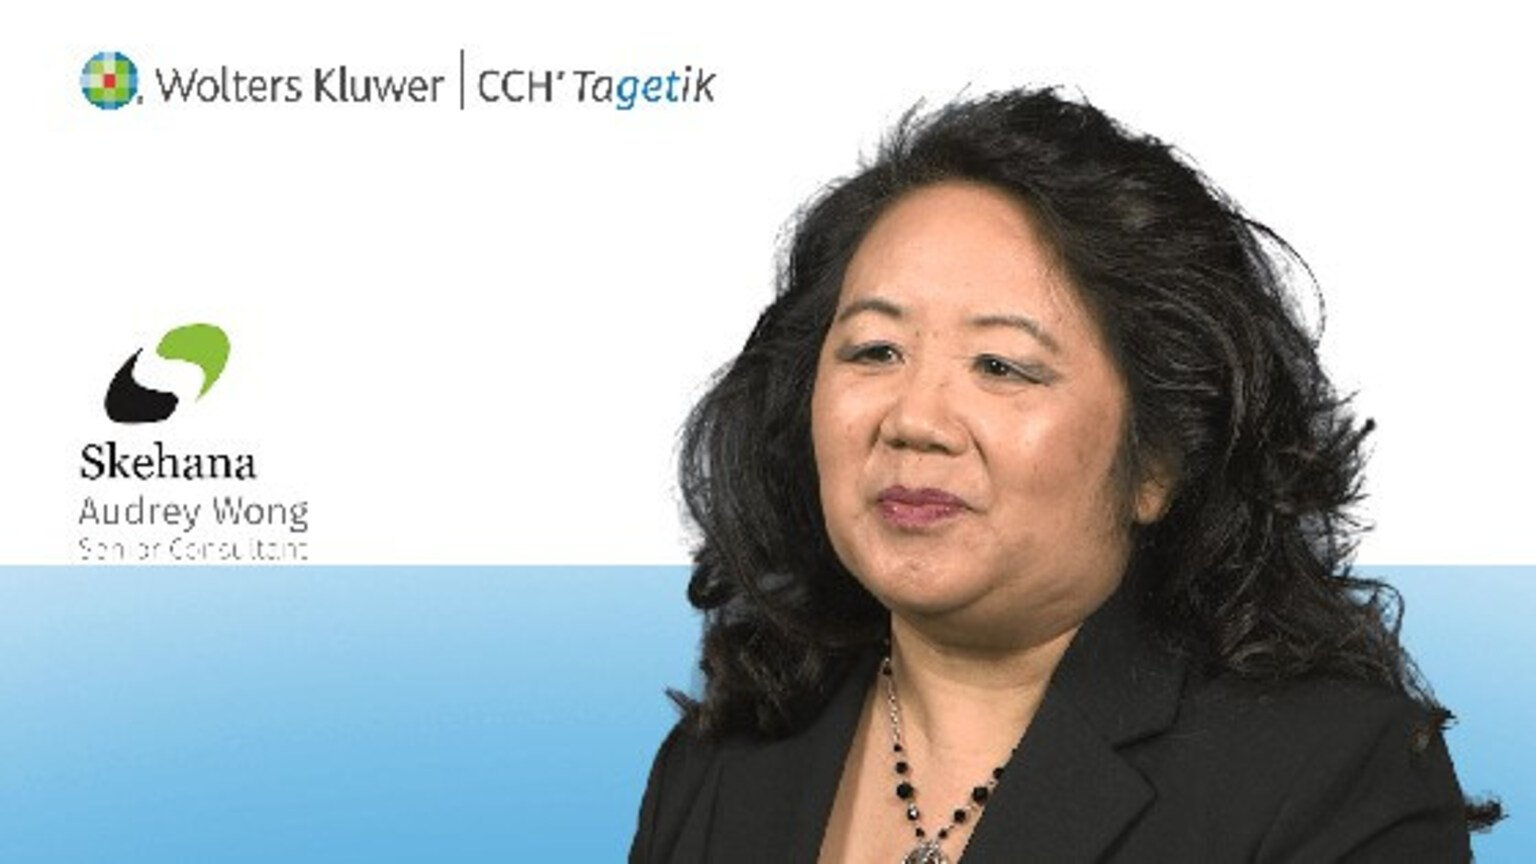 CCH Tagetik: A New Generation of CPM Software That Gives Skehana a Variety of Offerings for Their Customers.